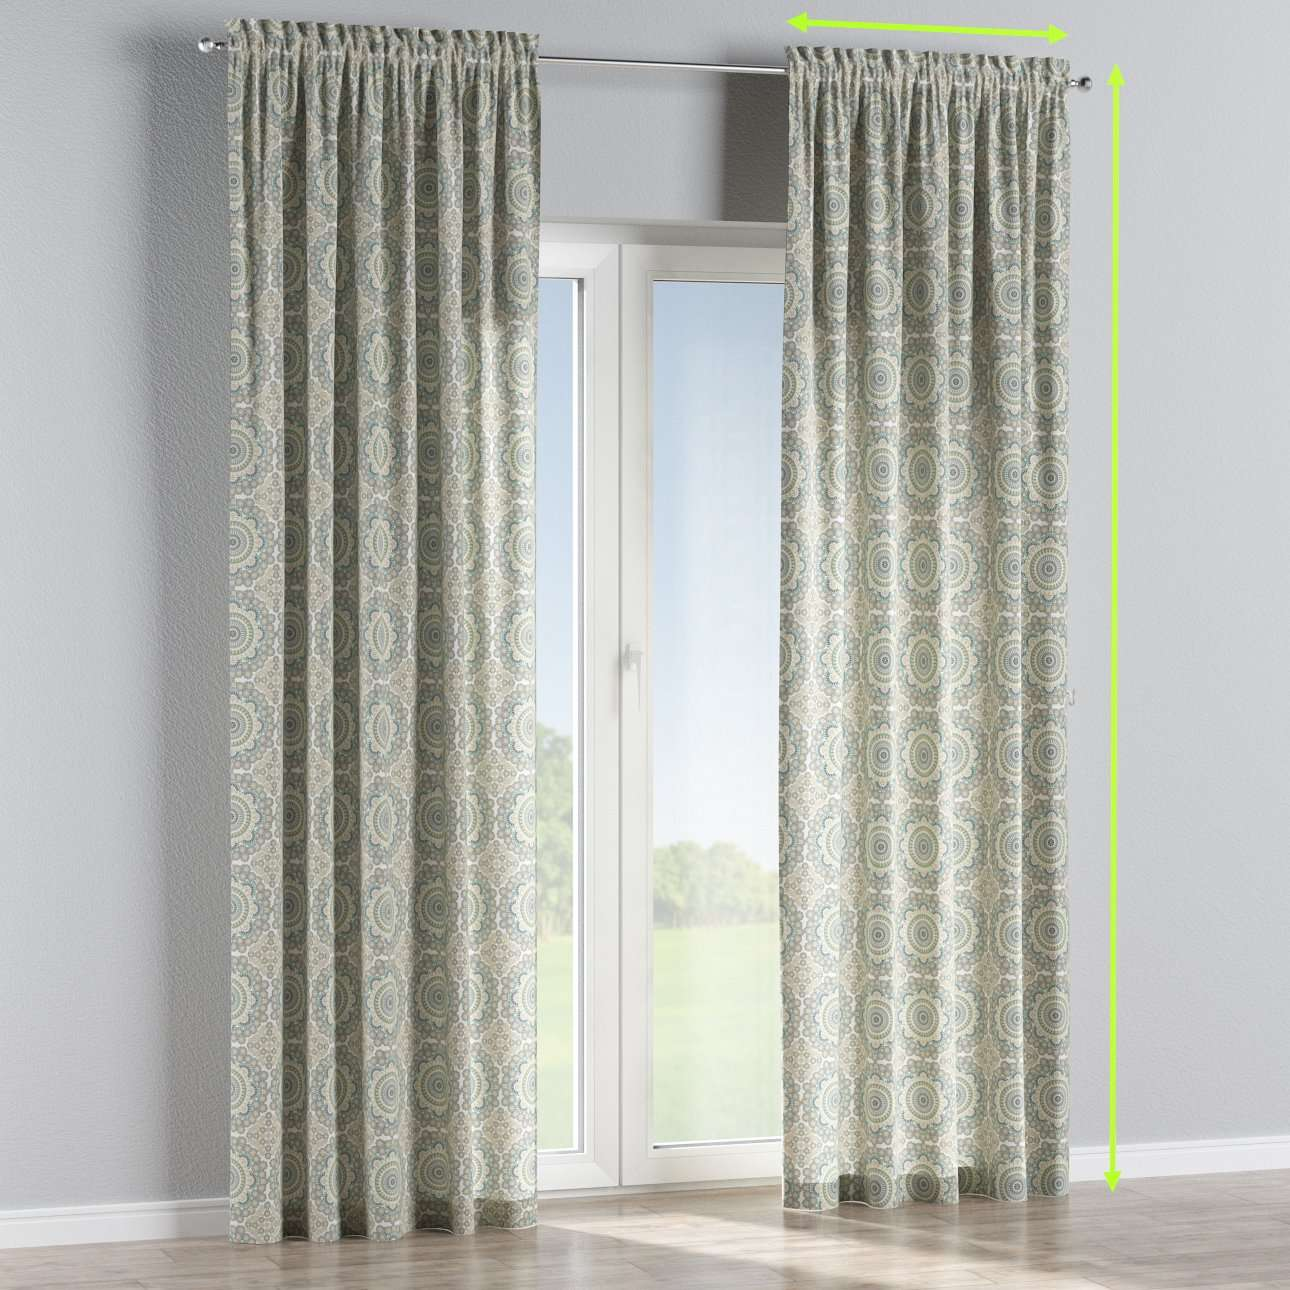 Slot and frill curtains in collection Comic Book & Geo Prints, fabric: 137-84